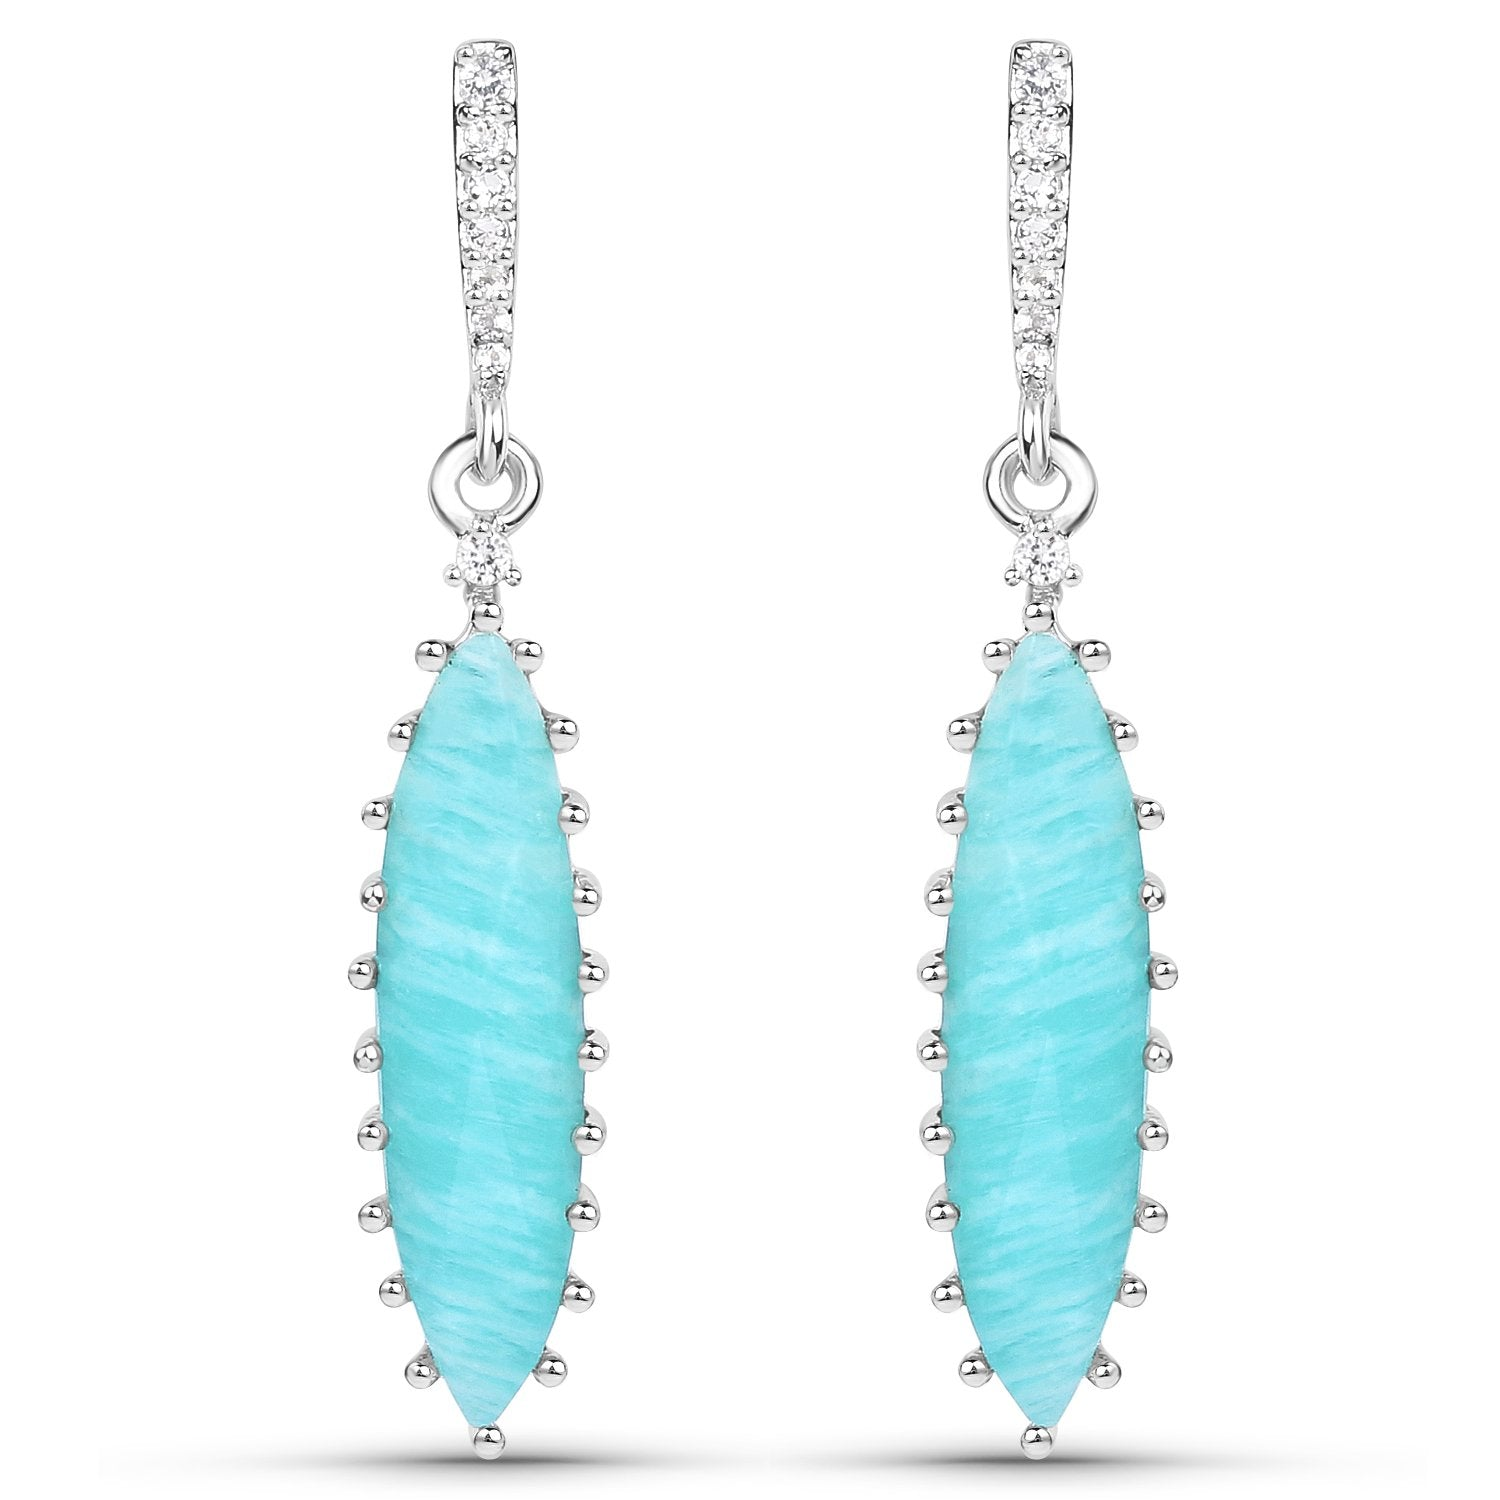 LoveHuang 6.41 Carats Genuine Amazonite and White Topaz Art Deco Earrings Solid .925 Sterling Silver With Rhodium Plating